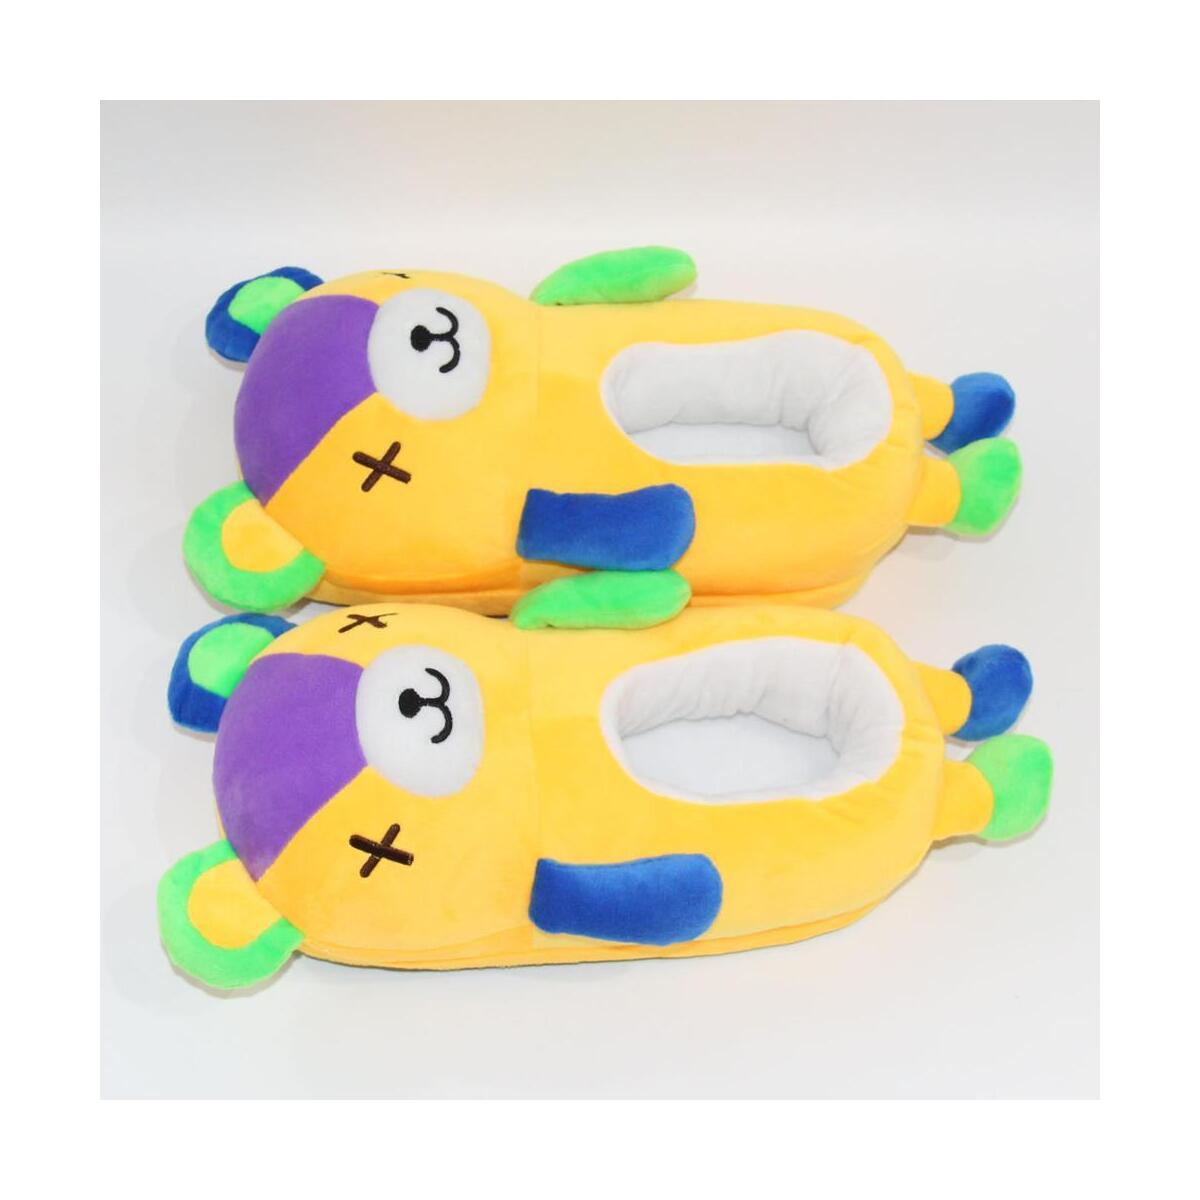 Animal Crossing Tom Nook Celeste and Stitches Slippers, Celeste